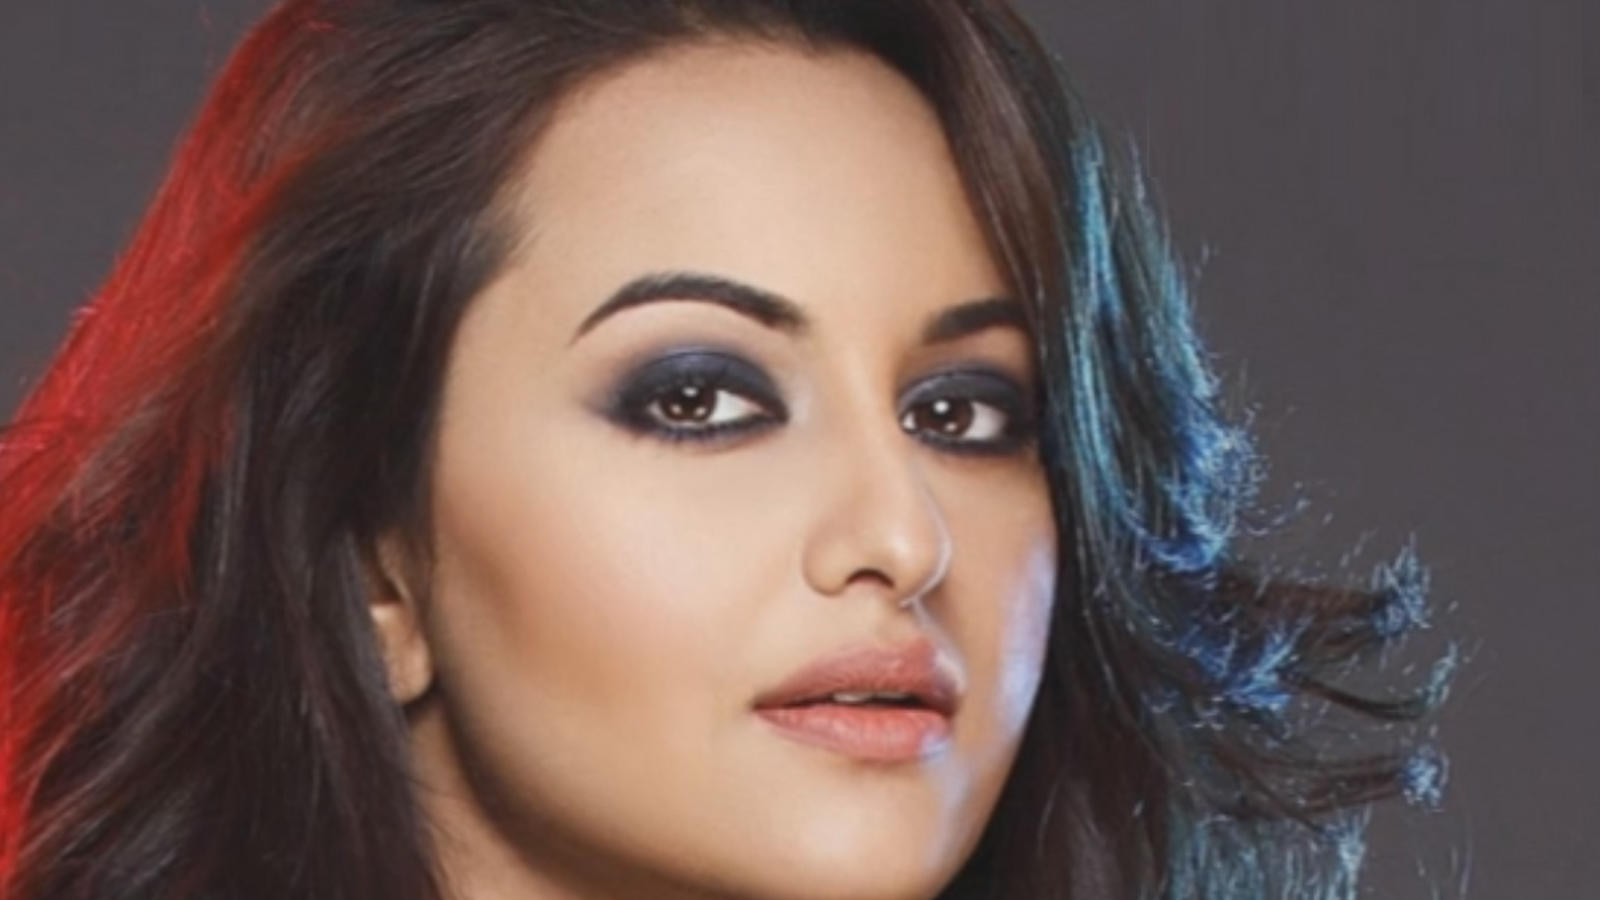 Which comedy films does Sonakshi Sinha like?